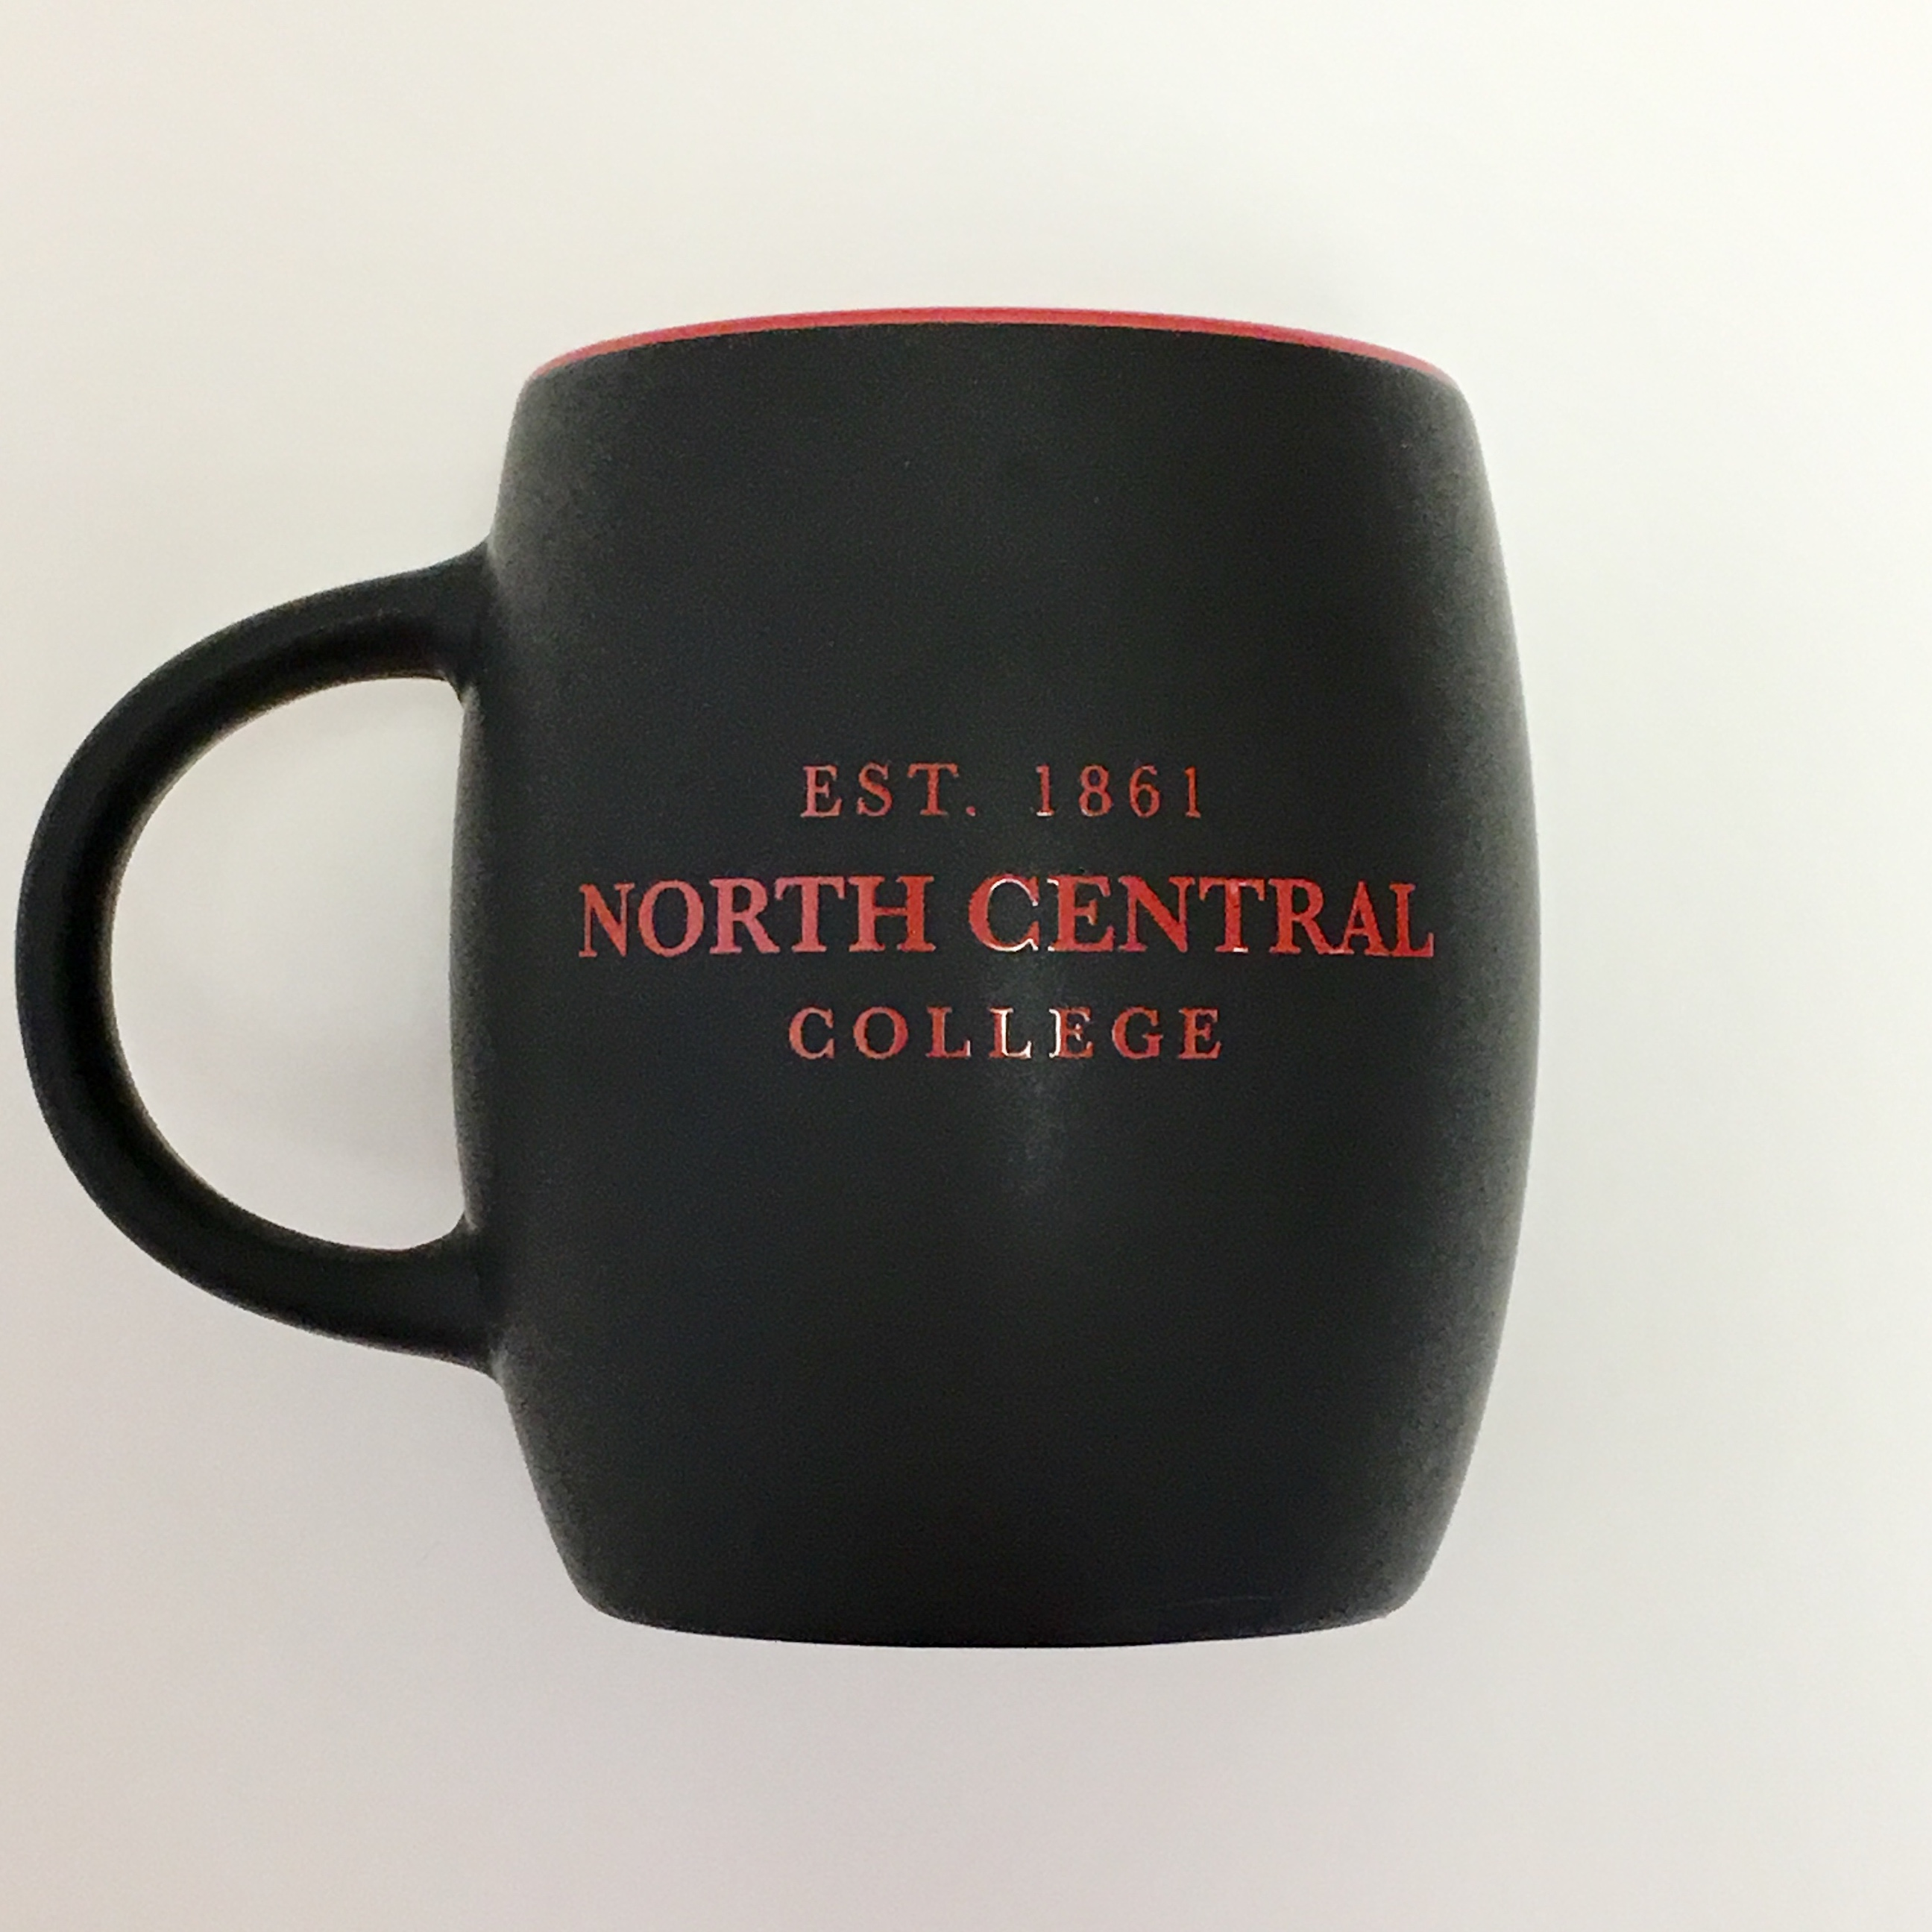 Image for the Matte North Central College Mug product